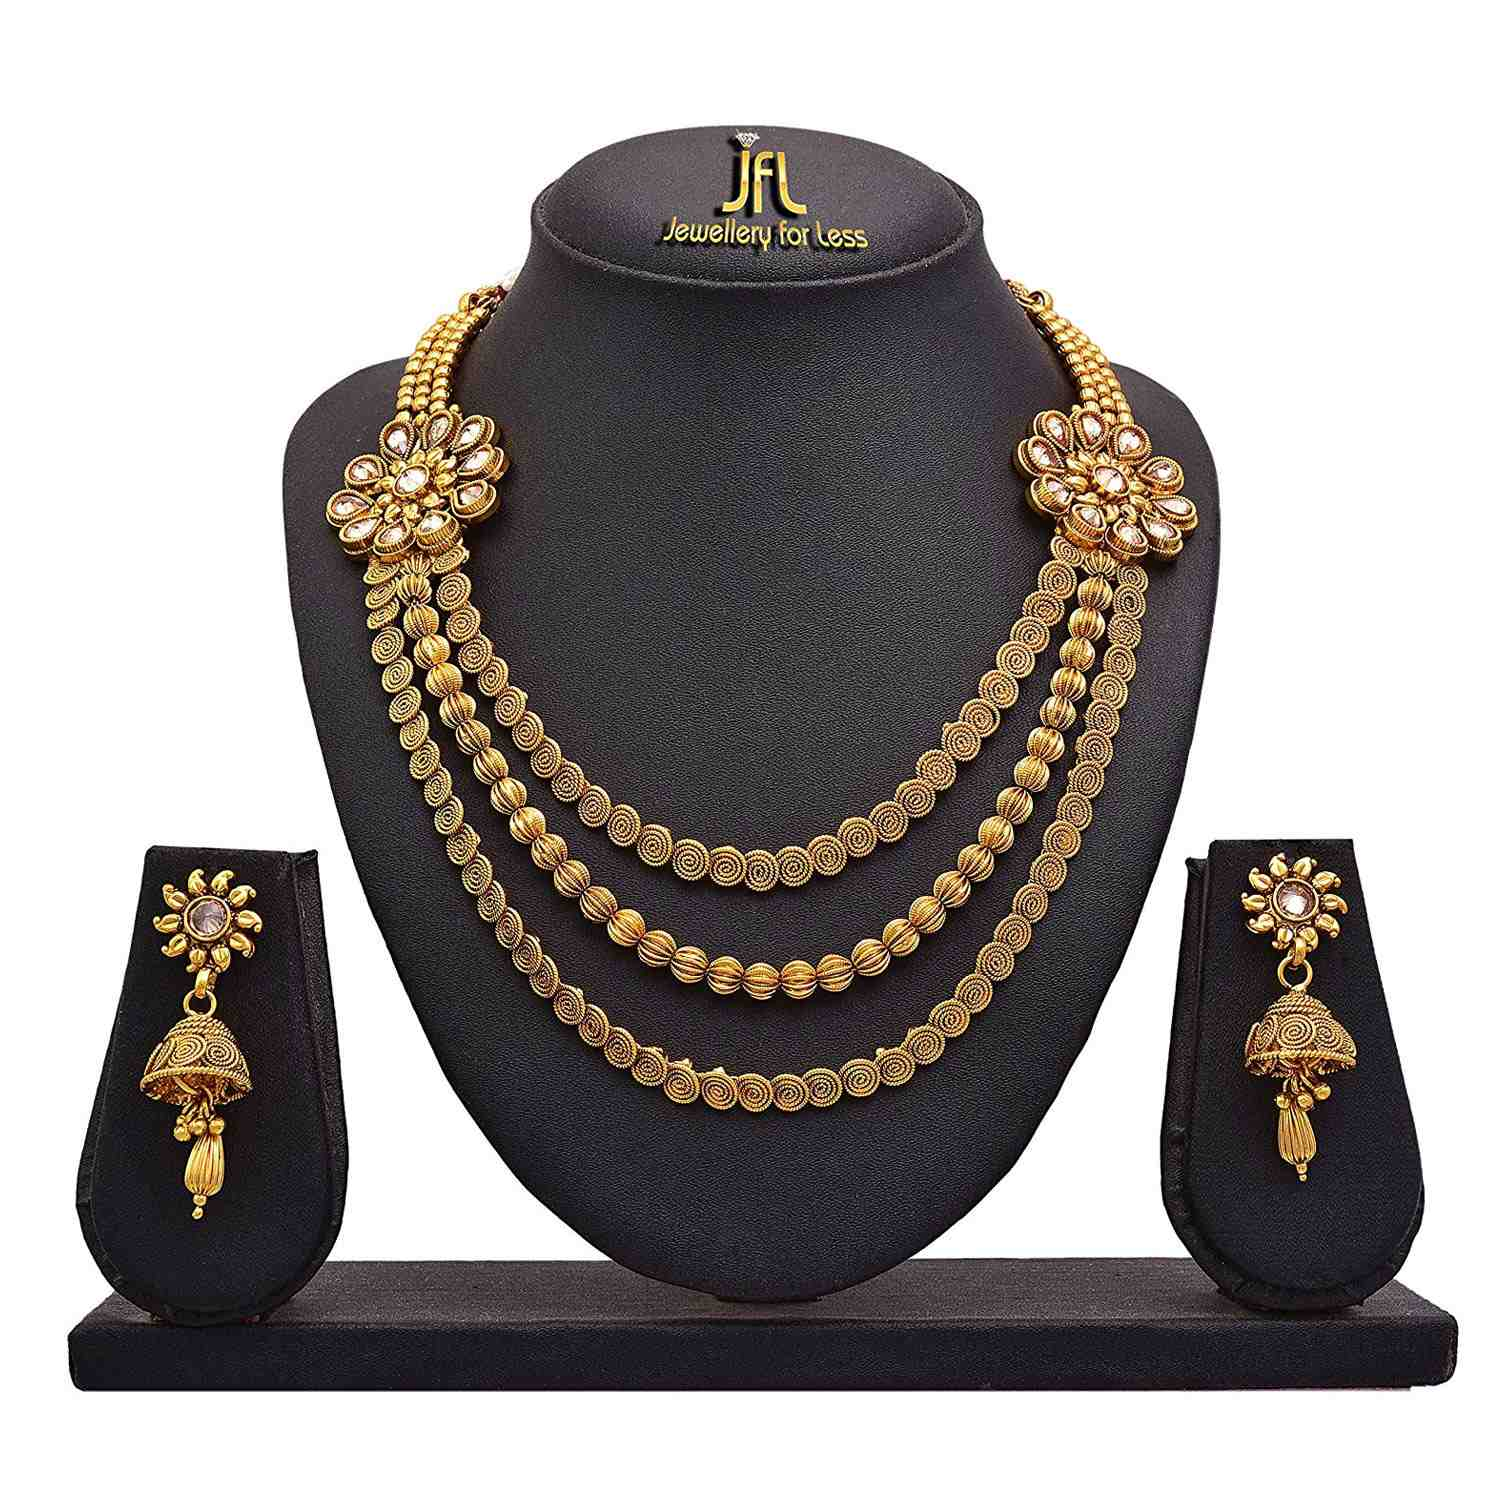 JFL - Traditional Ethnic One Gram Gold Plated Polki Spiral Bead Designer Necklace Set with Earring for Girls and Women